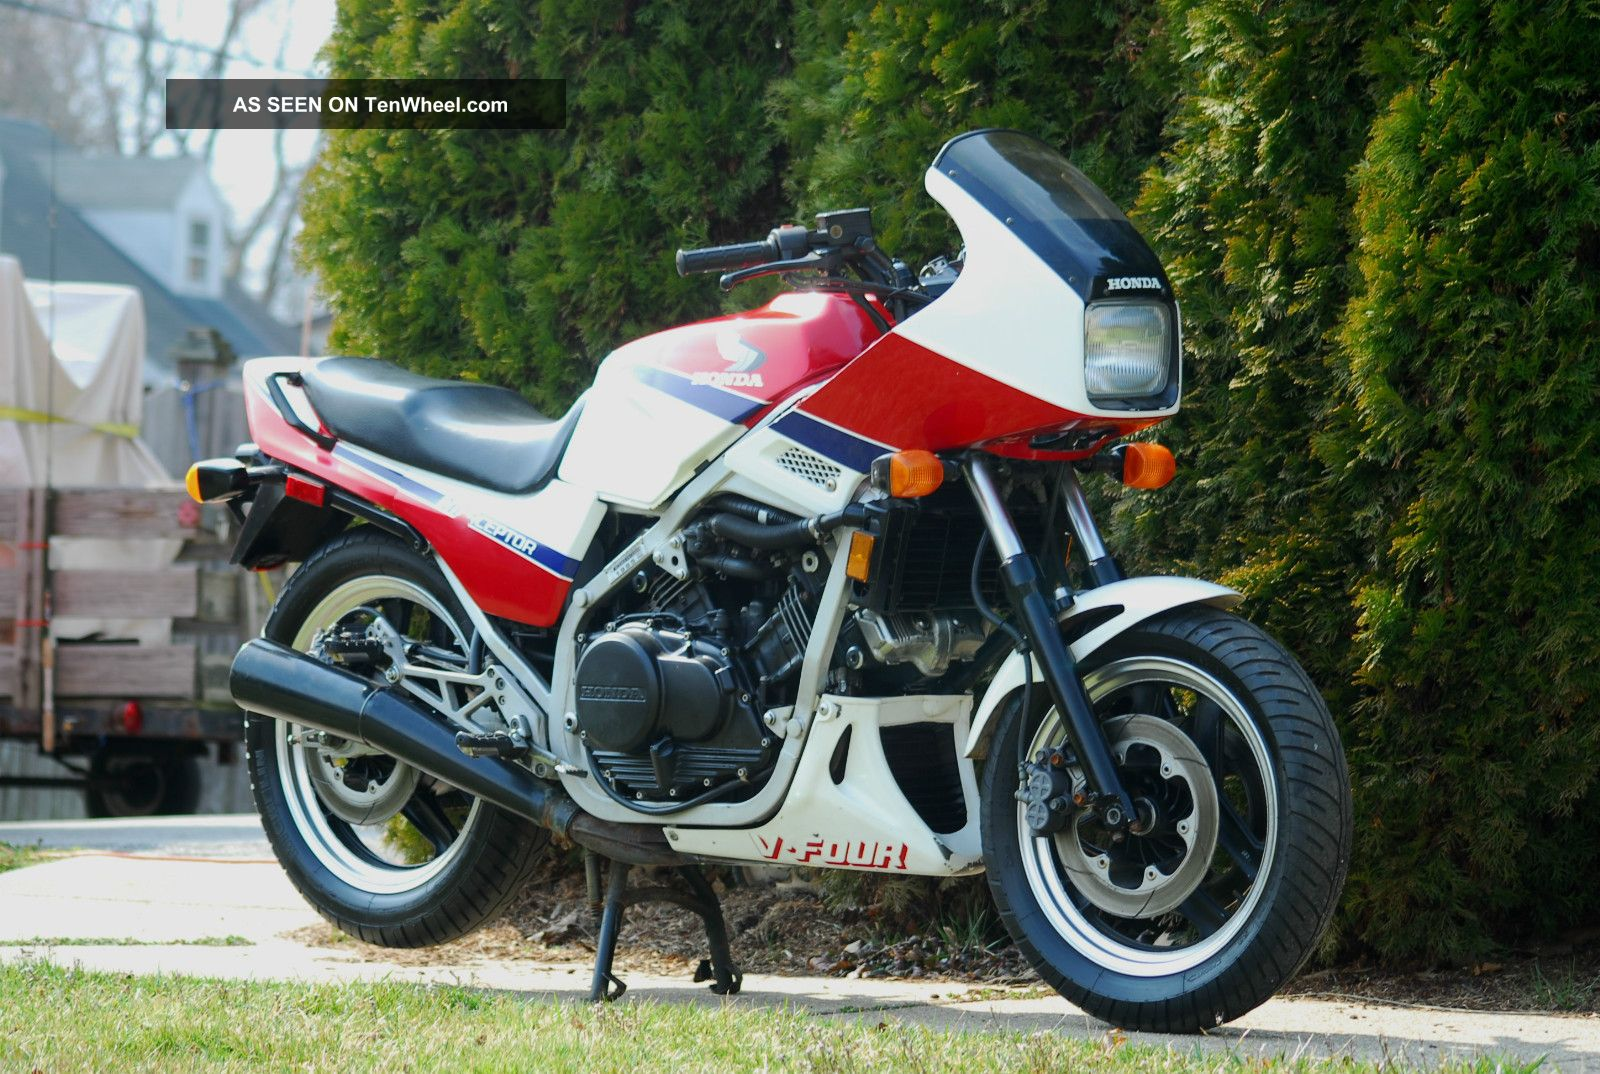 100468834 besides Repair And Service Manuals additionally 96611 as well Honda vf1100 20sabra 85 together with ViewVehicle. on 1985 honda magna 500 specs